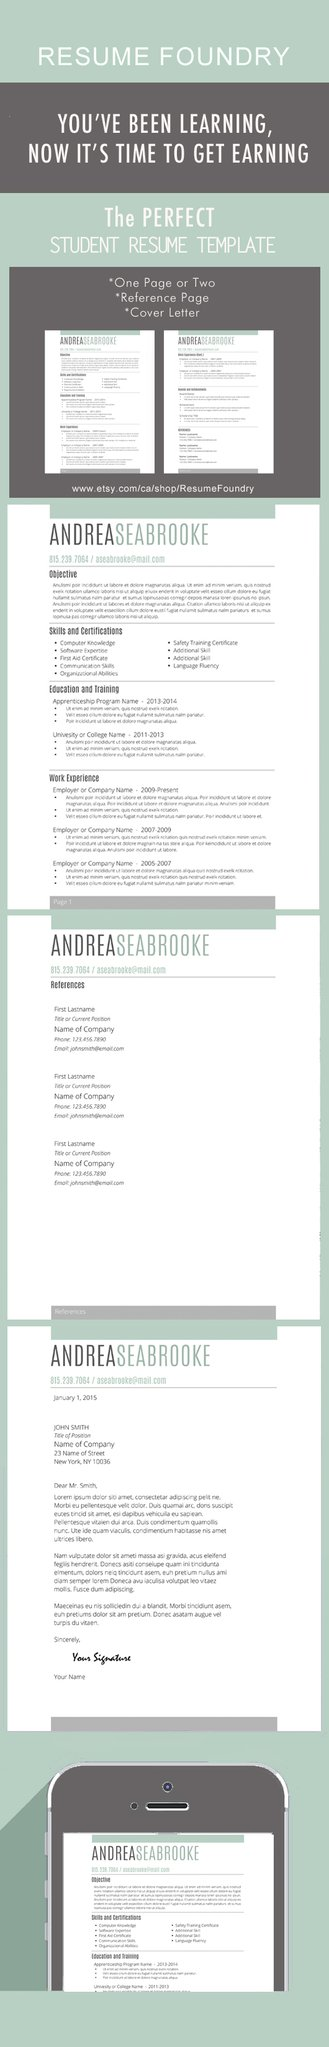 Awesome Resume Template For Students   One Page, Two Page, Cover Letter And  Reference Page   All For $15. Look Professional With This Beautiful Resume.